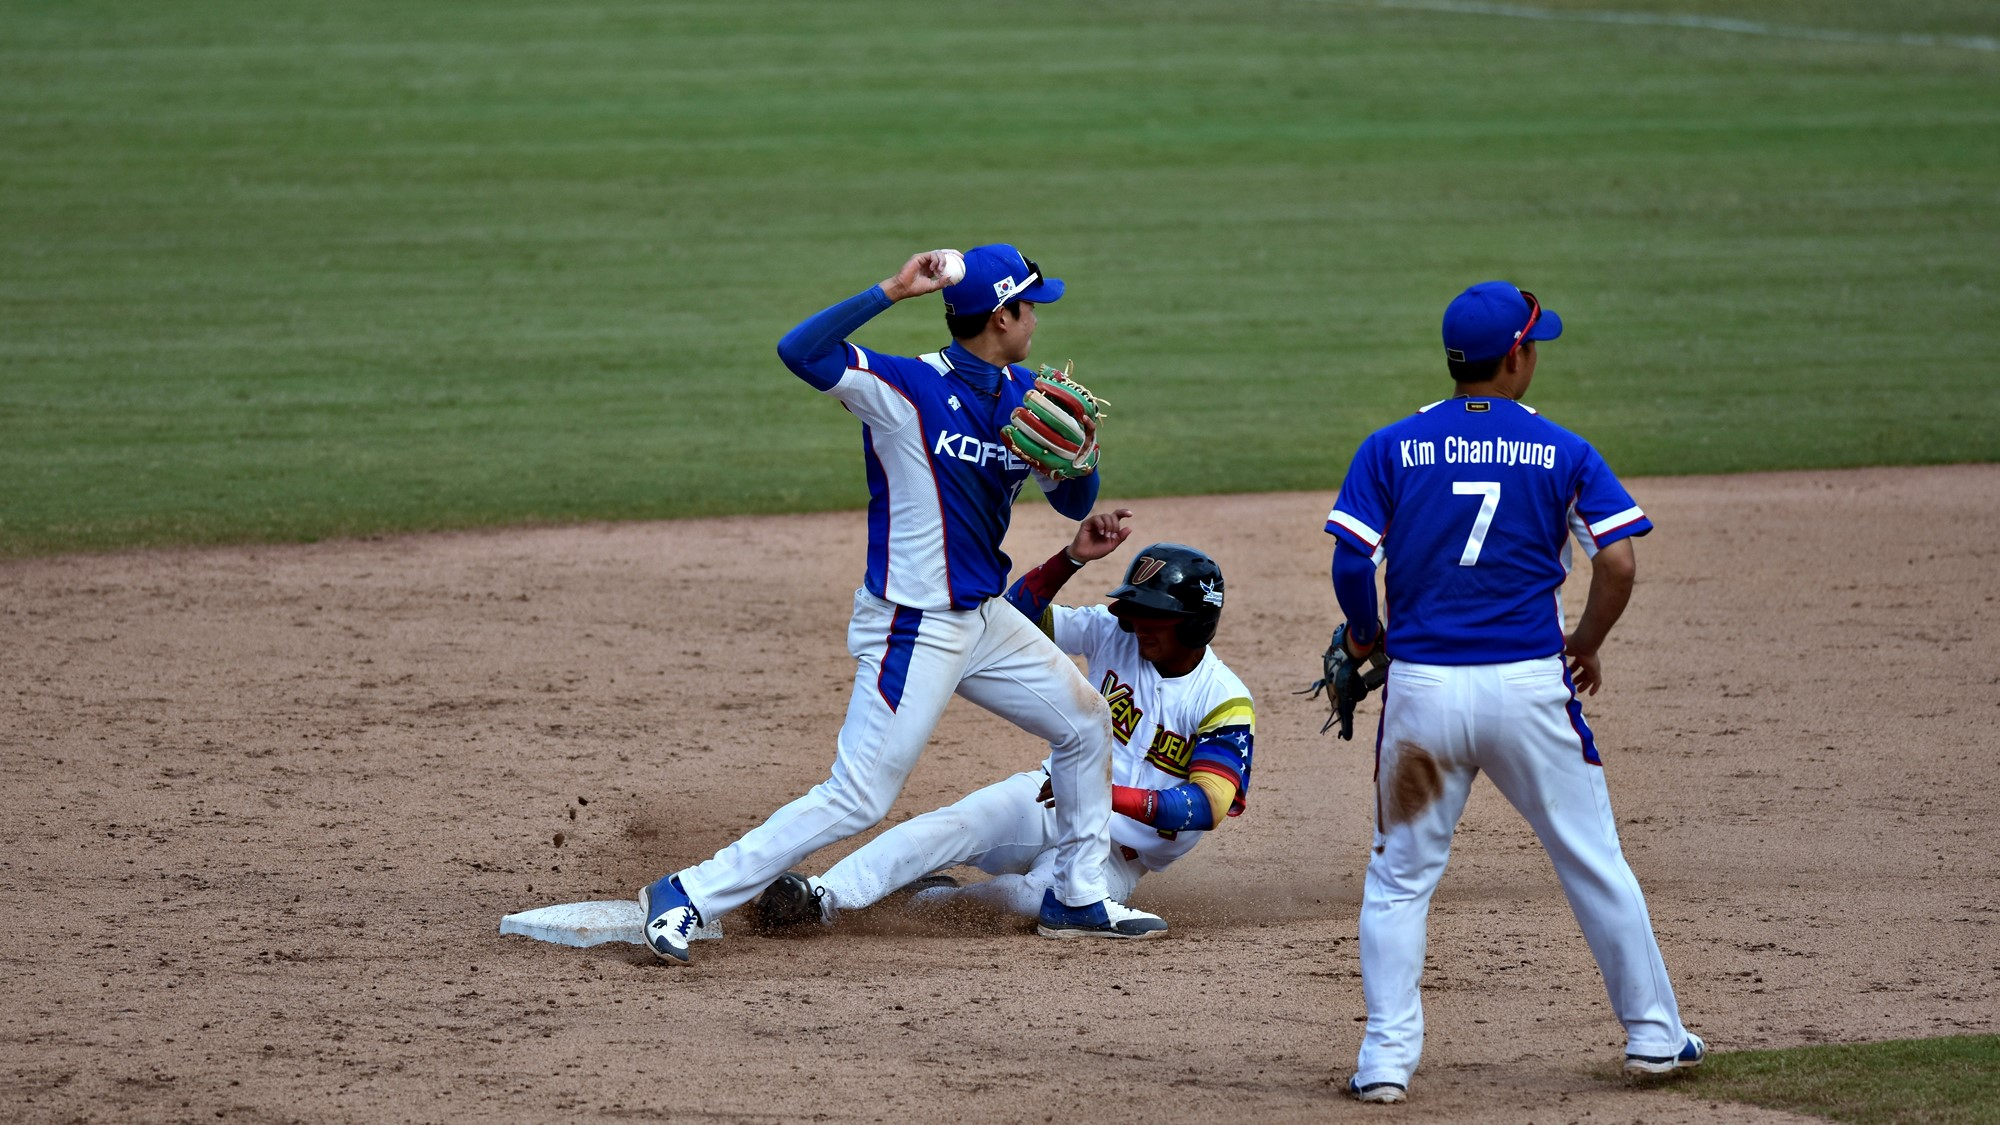 Choe Tae Seong, the hero against Mexico on Saturday, fails to complete a double play